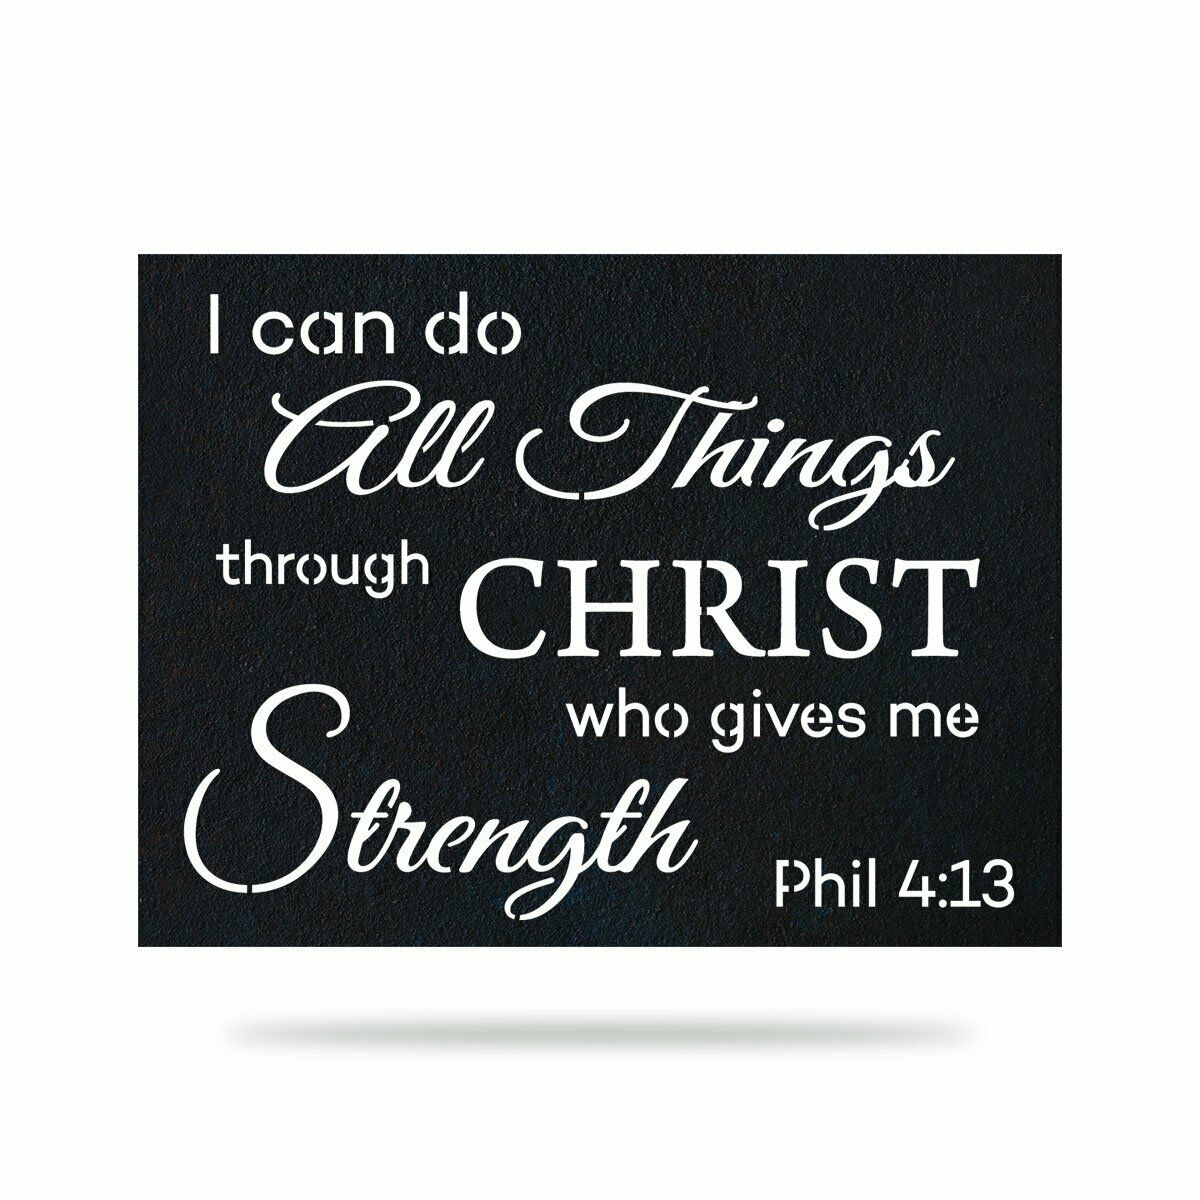 Philippians 4 13 I can do all things through Christ, who strengthens me